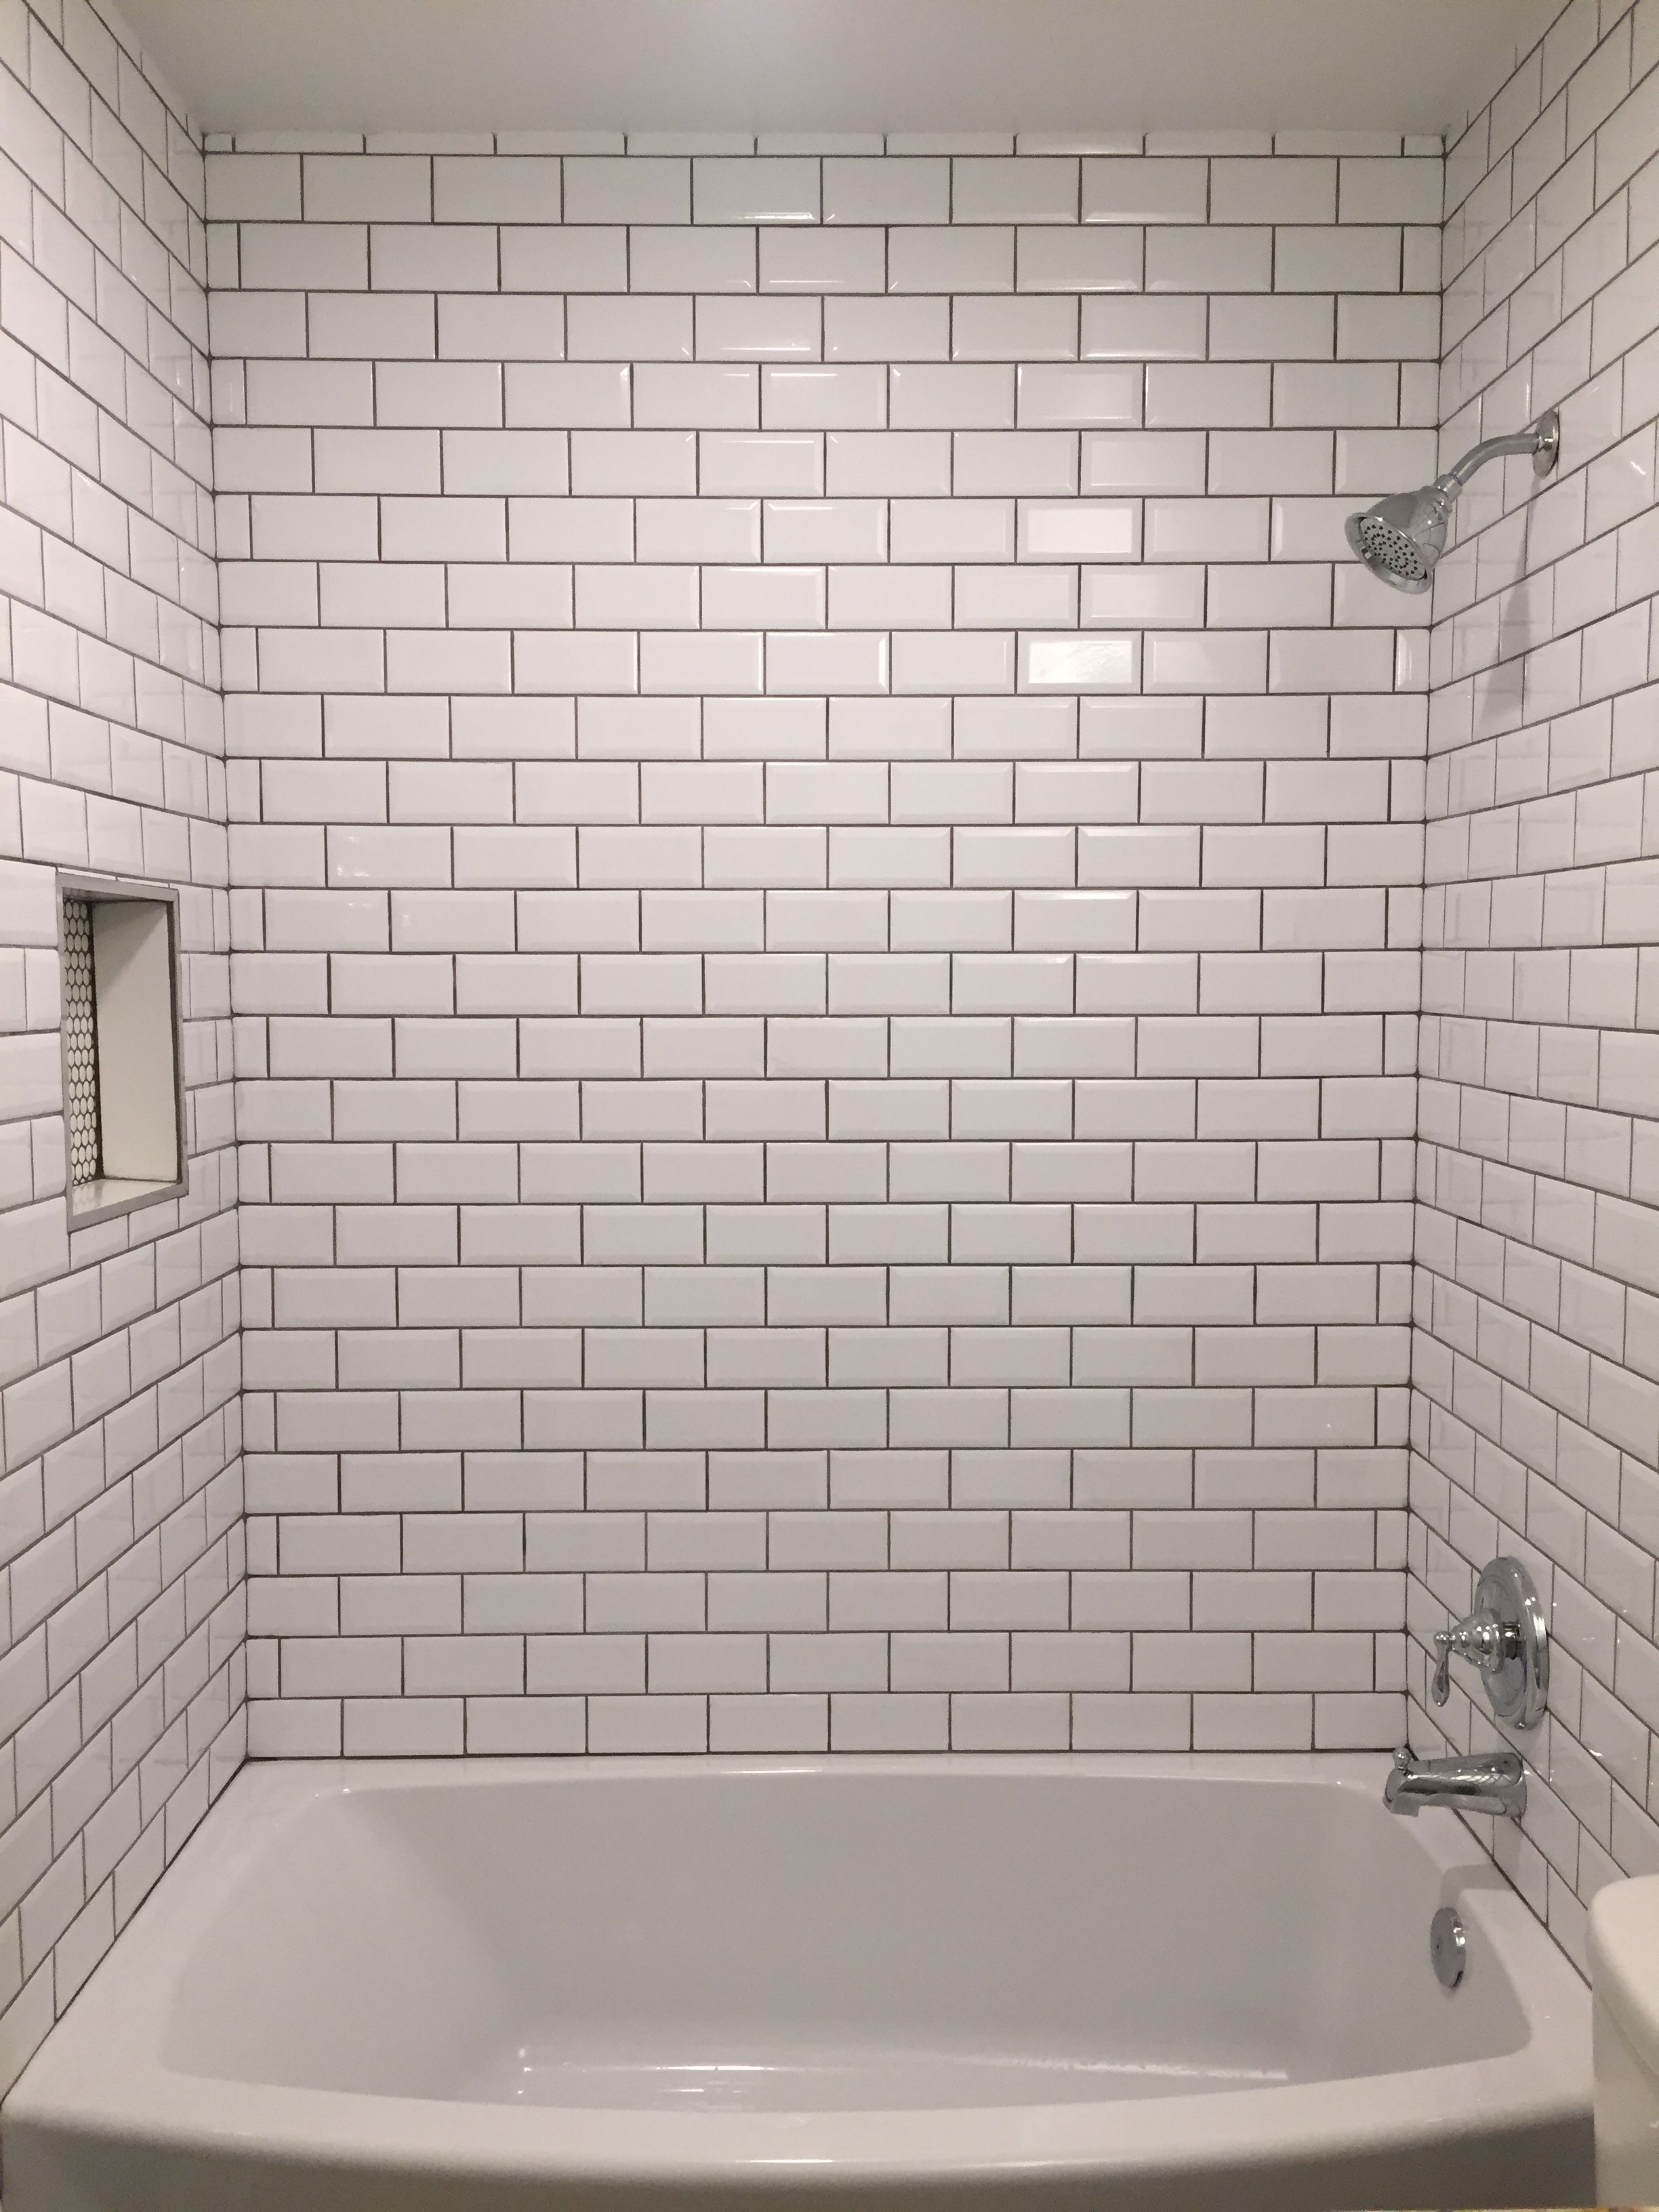 Bathroom Grout Beveled Bright White Subway Tile With Mapei Grey Grout Bathroom